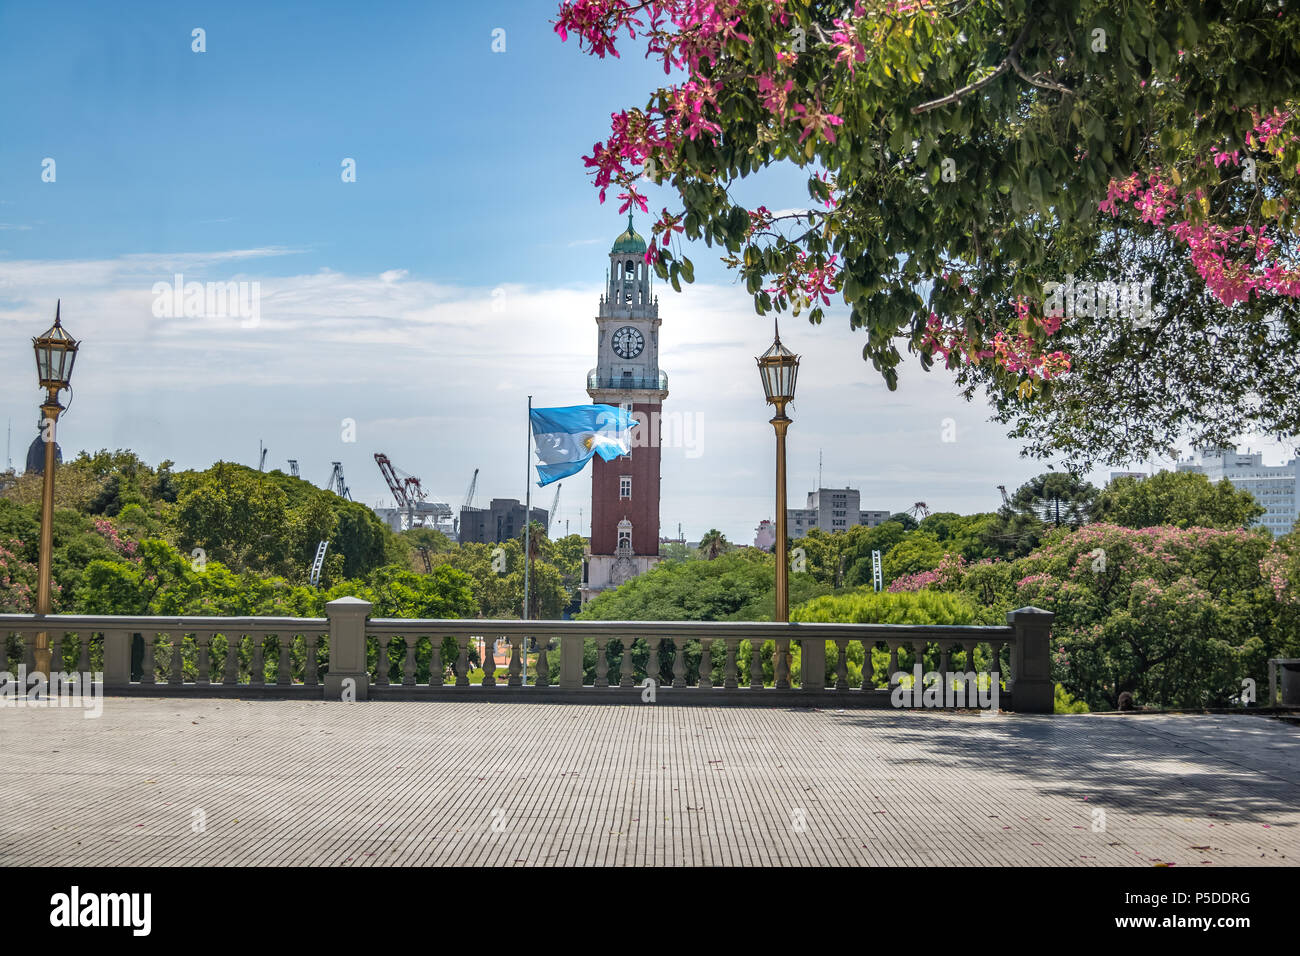 Torre Monumental or Torre de los Ingleses (Tower of the English) and General San Martin Plaza in Retiro - Buenos Aires, Argentina Stock Photo